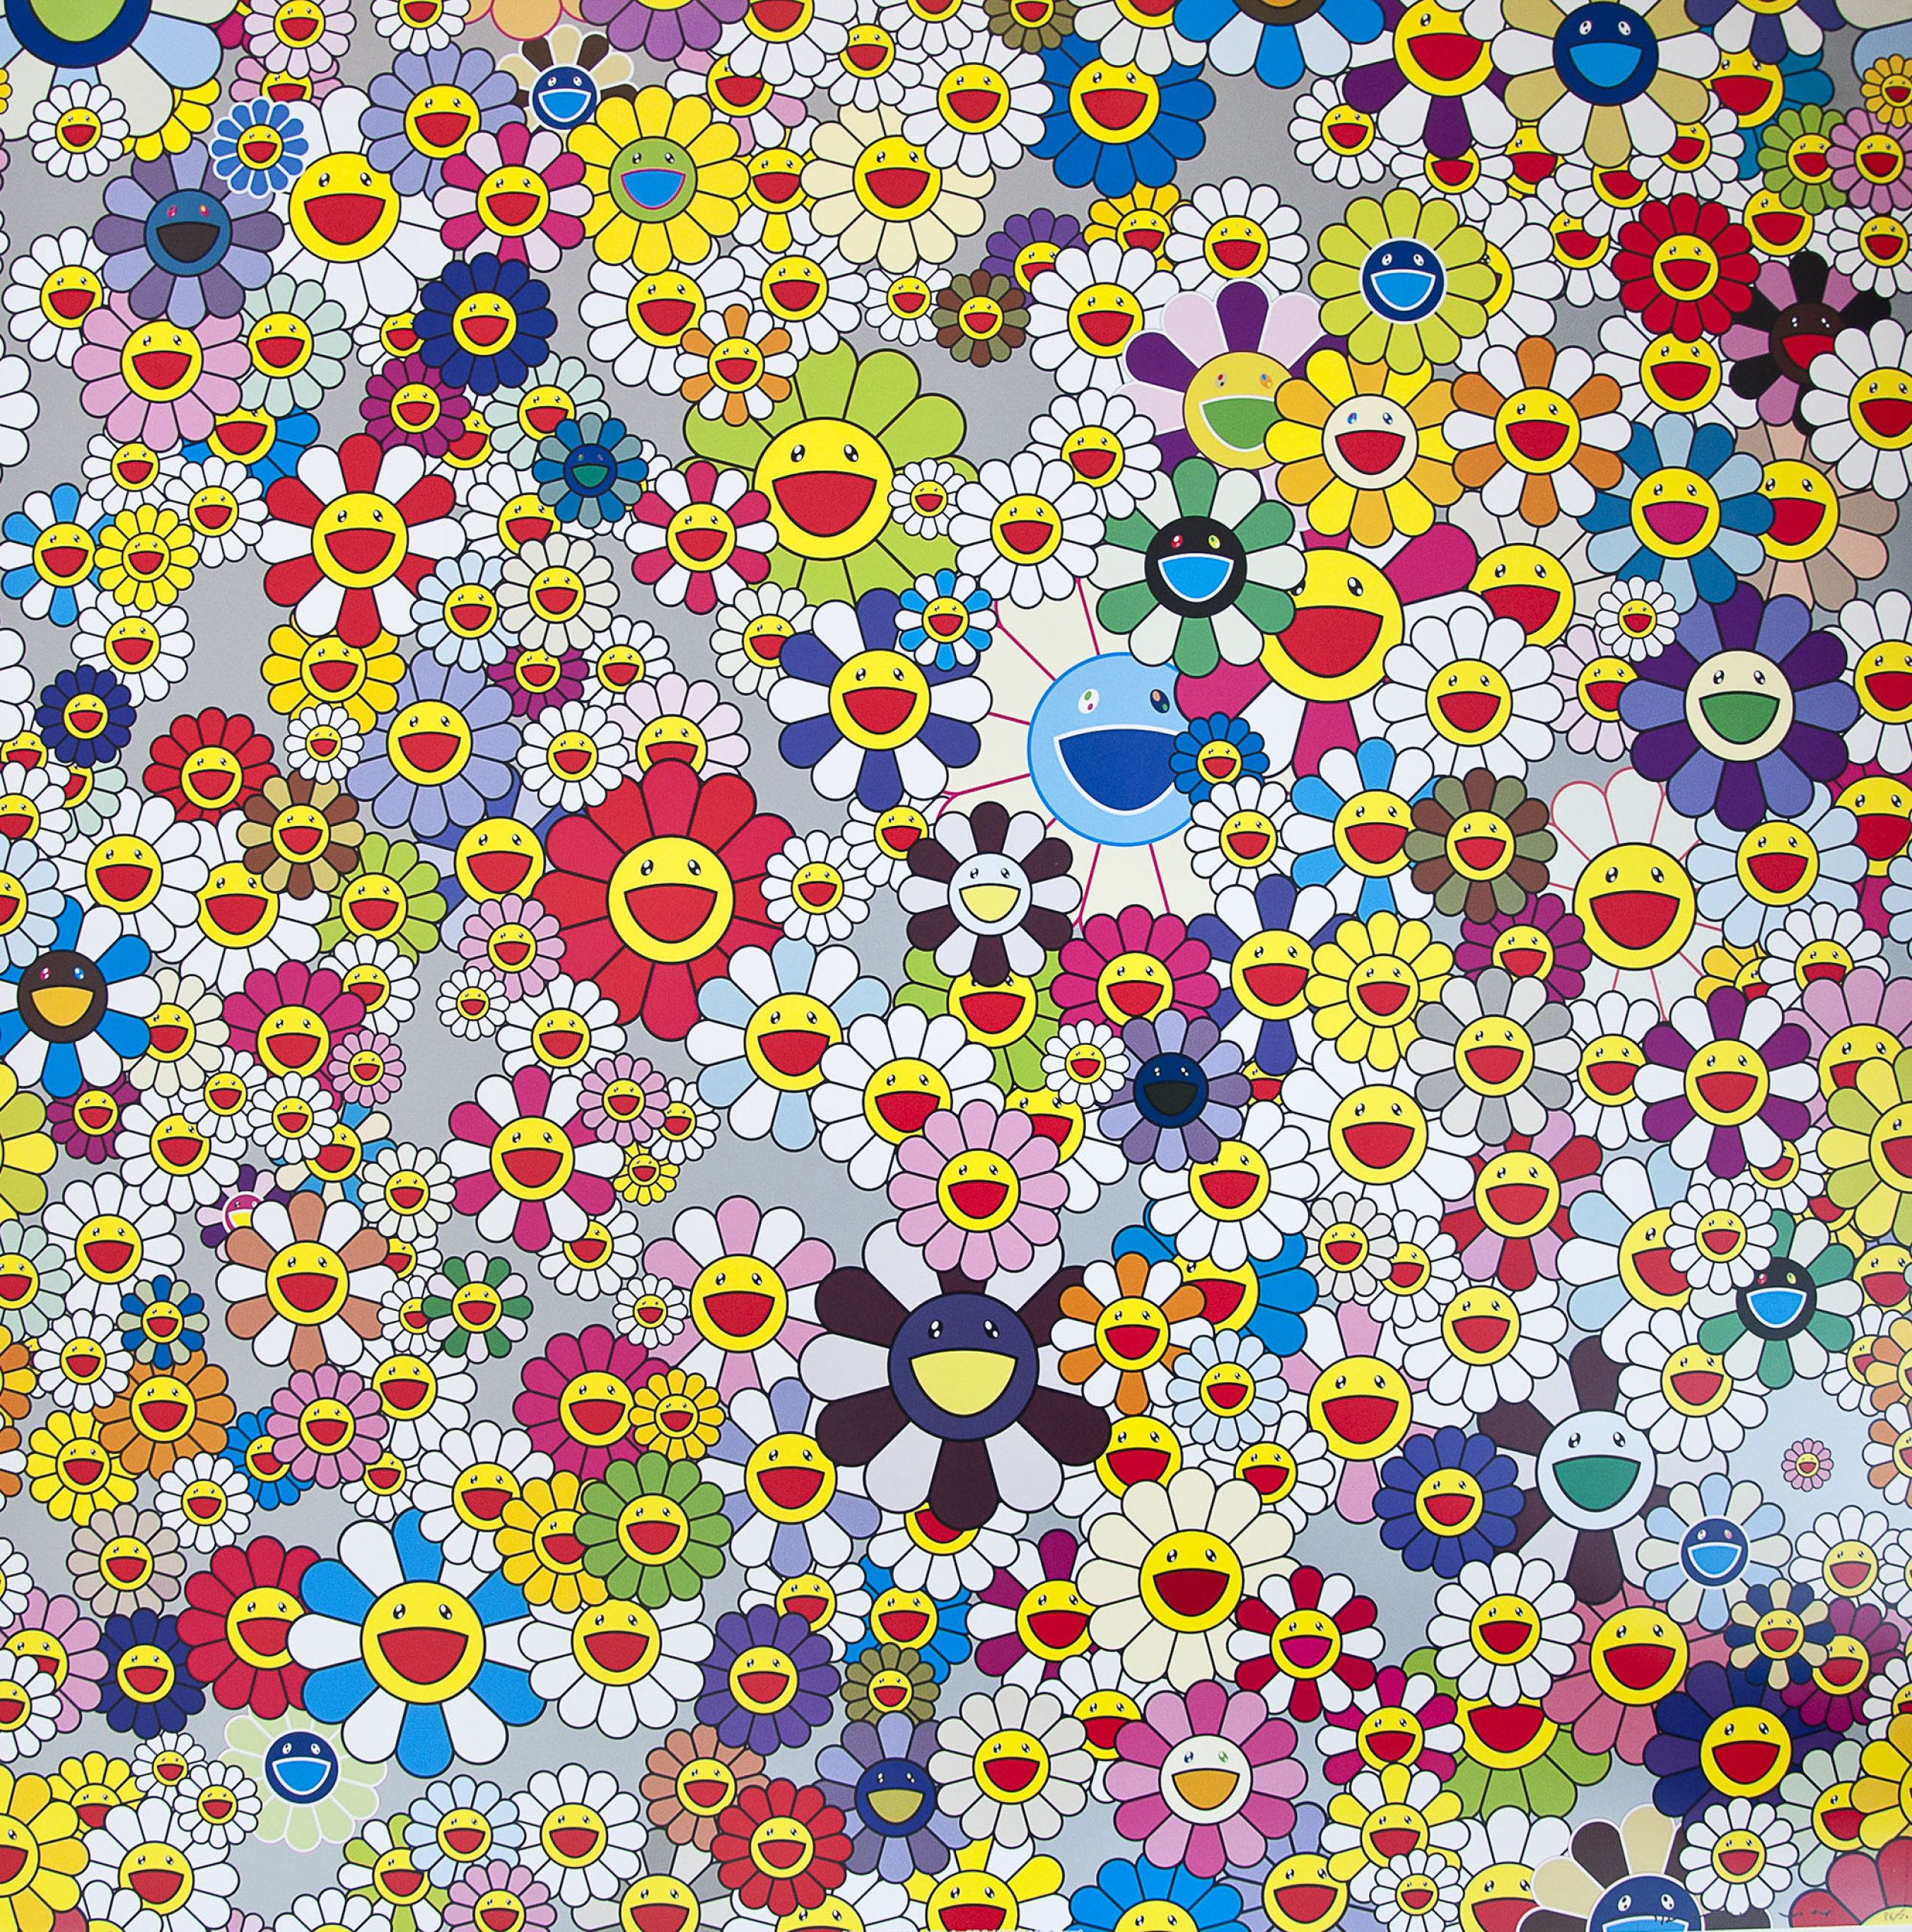 Takashi Murakami Wallpapers Top Free Takashi Murakami